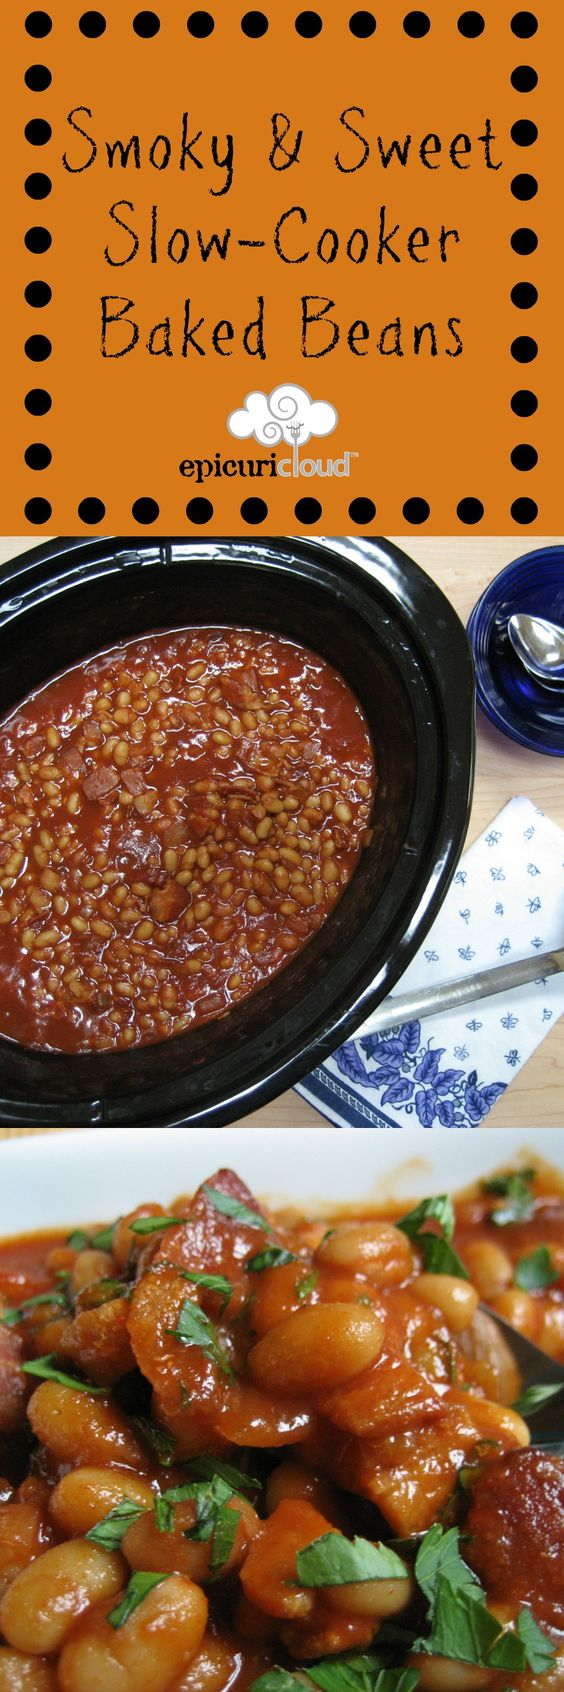 Baked beans, Beans and Slow cooker baked beans on Pinterest